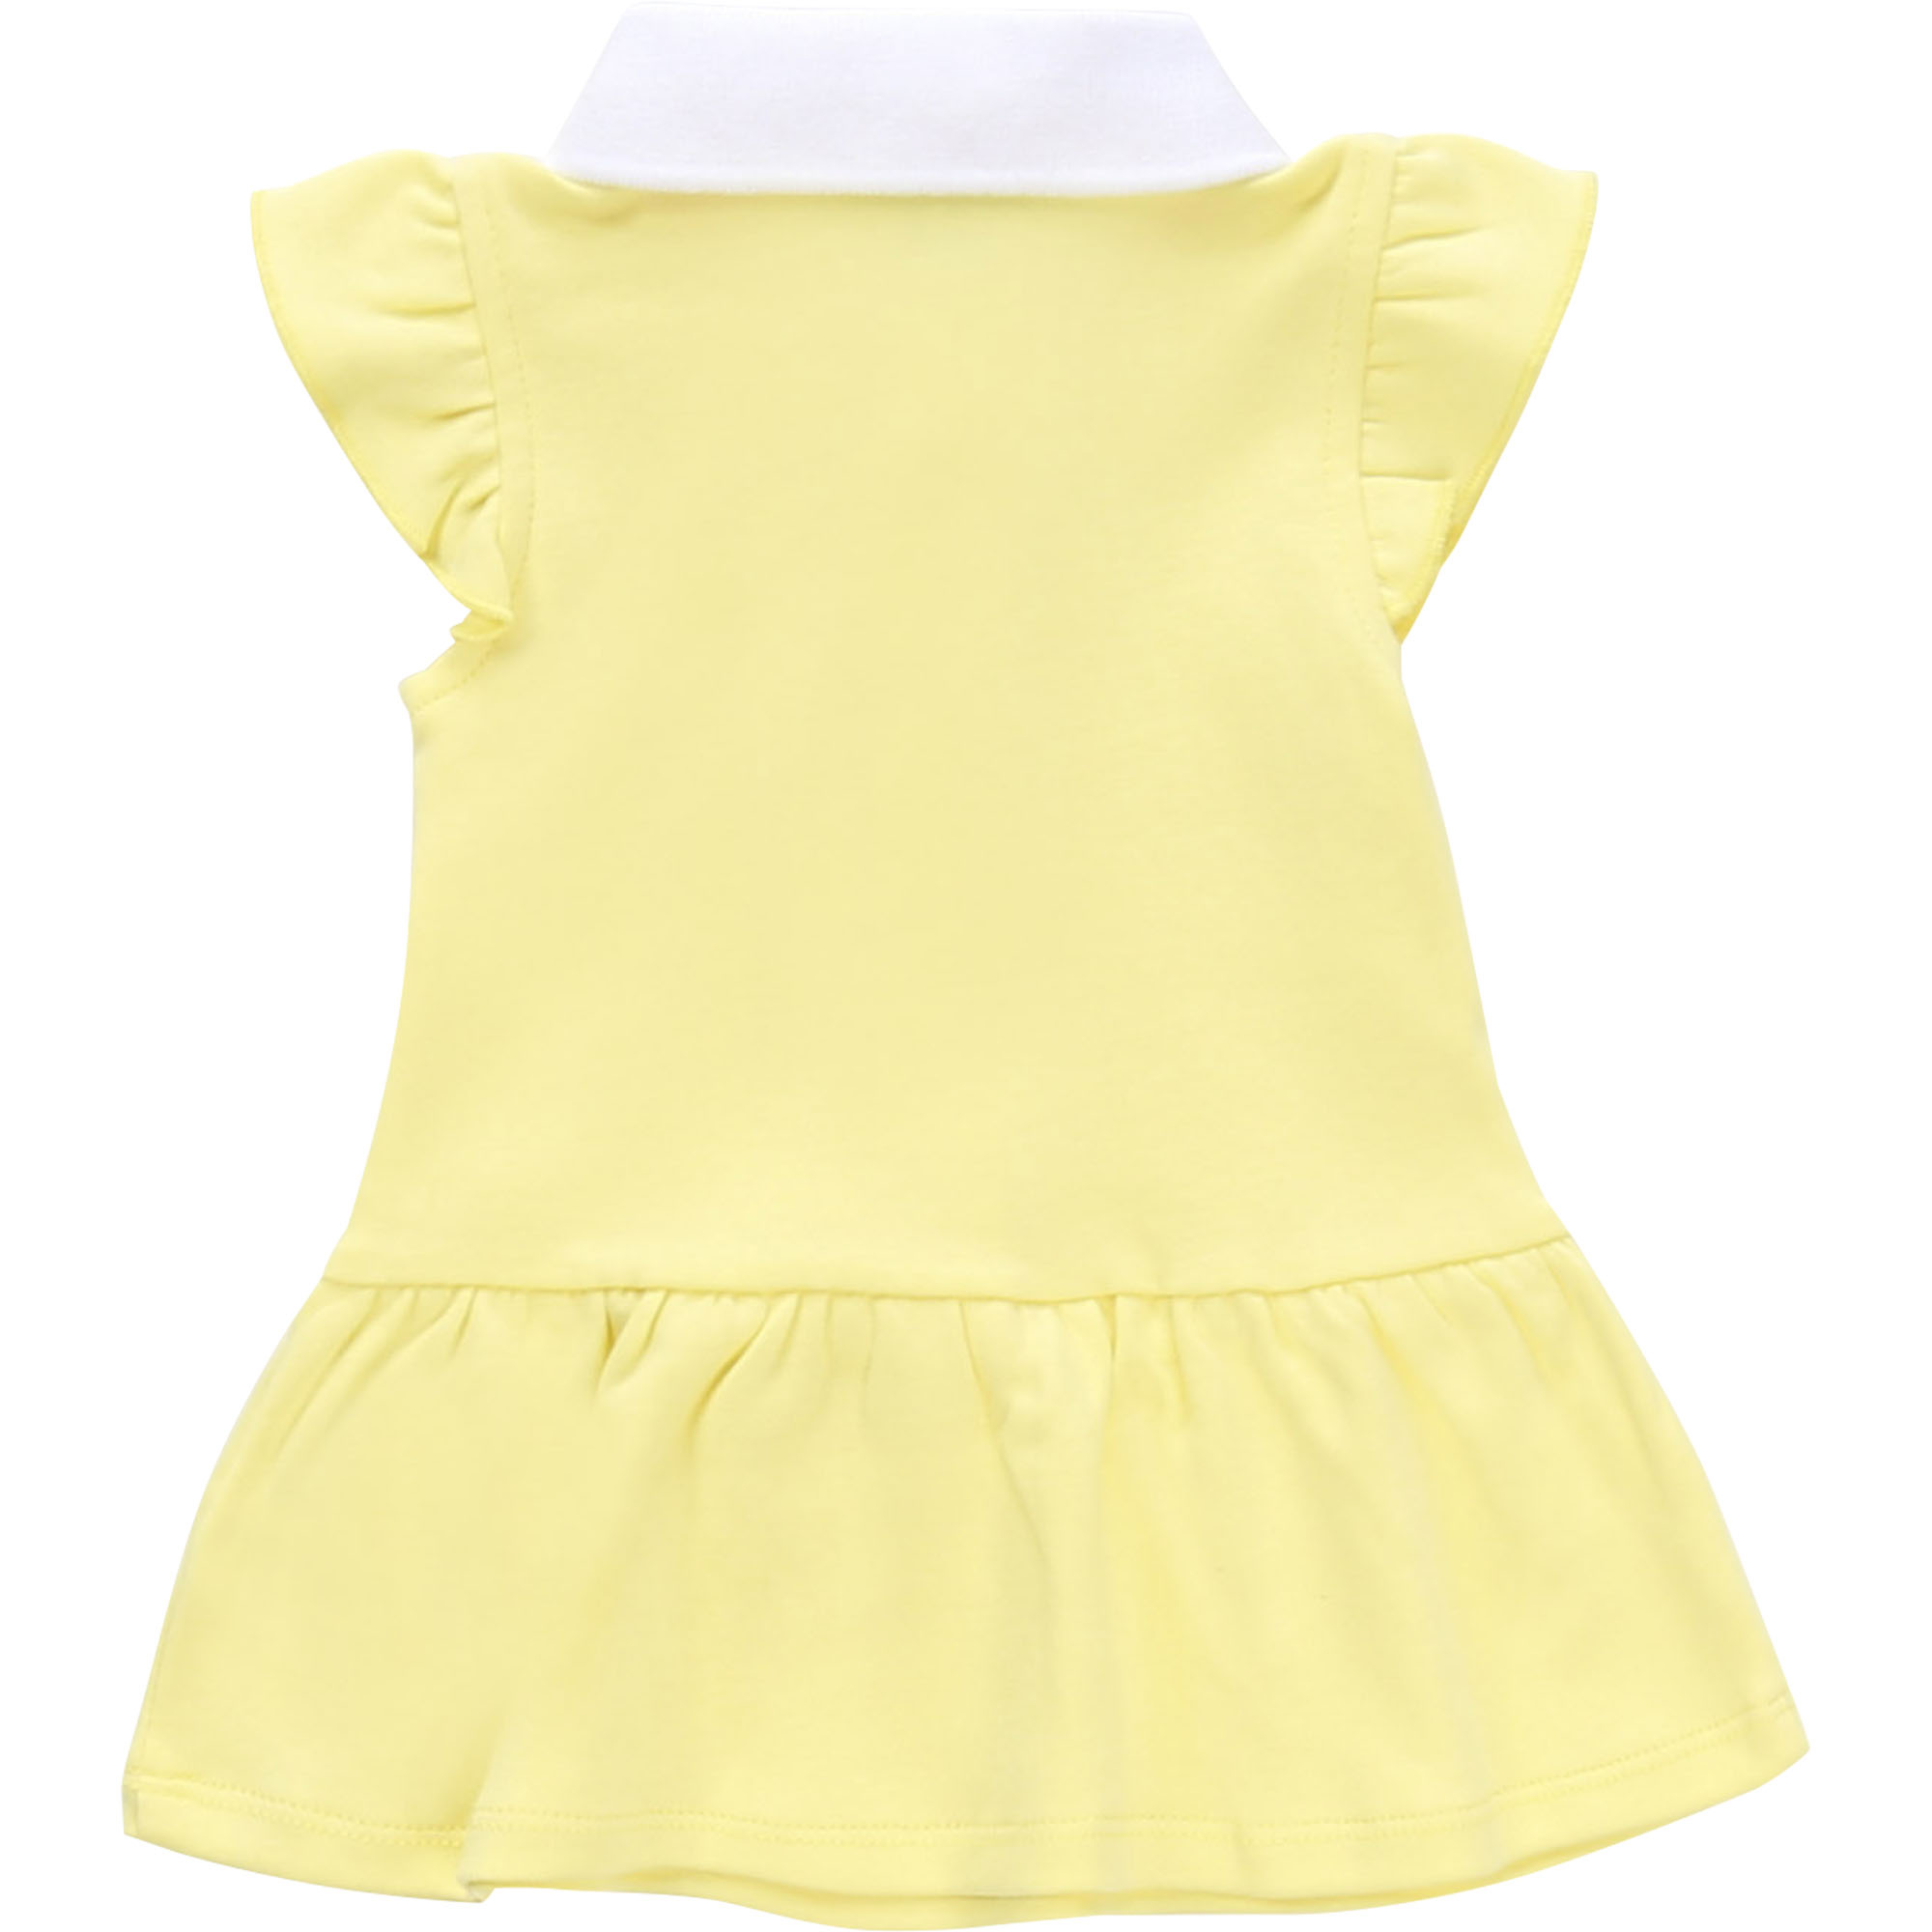 Robe taille basse 1% coton BOSS pour FILLE